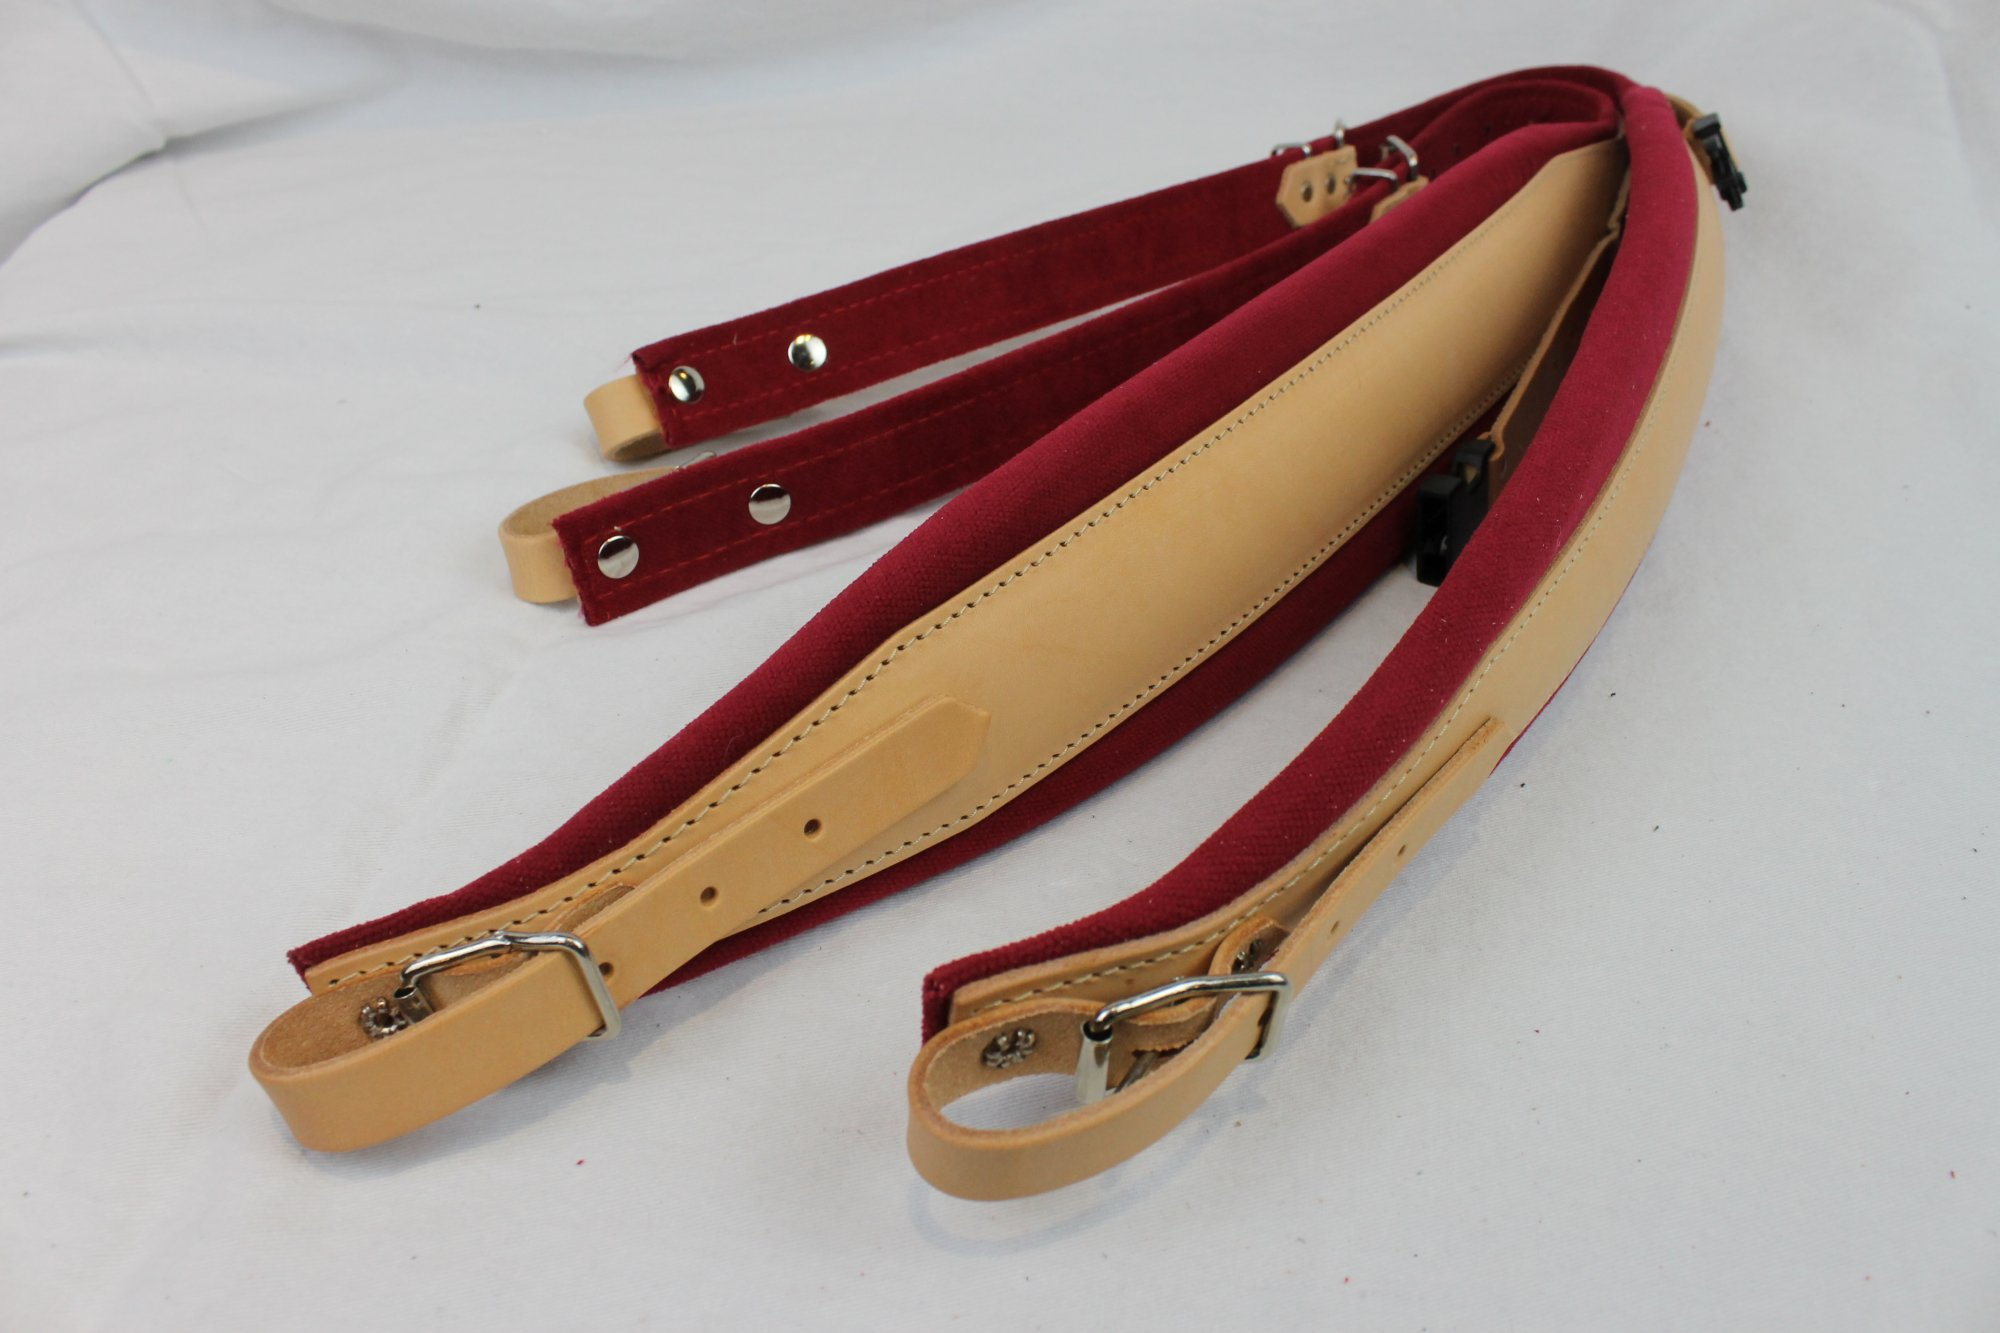 New Tan Leather Red Velour Fuselli Accordion Shoulder Straps Width (8cm / 3.1in) Length (85~105cm / 33.5~41.3in)